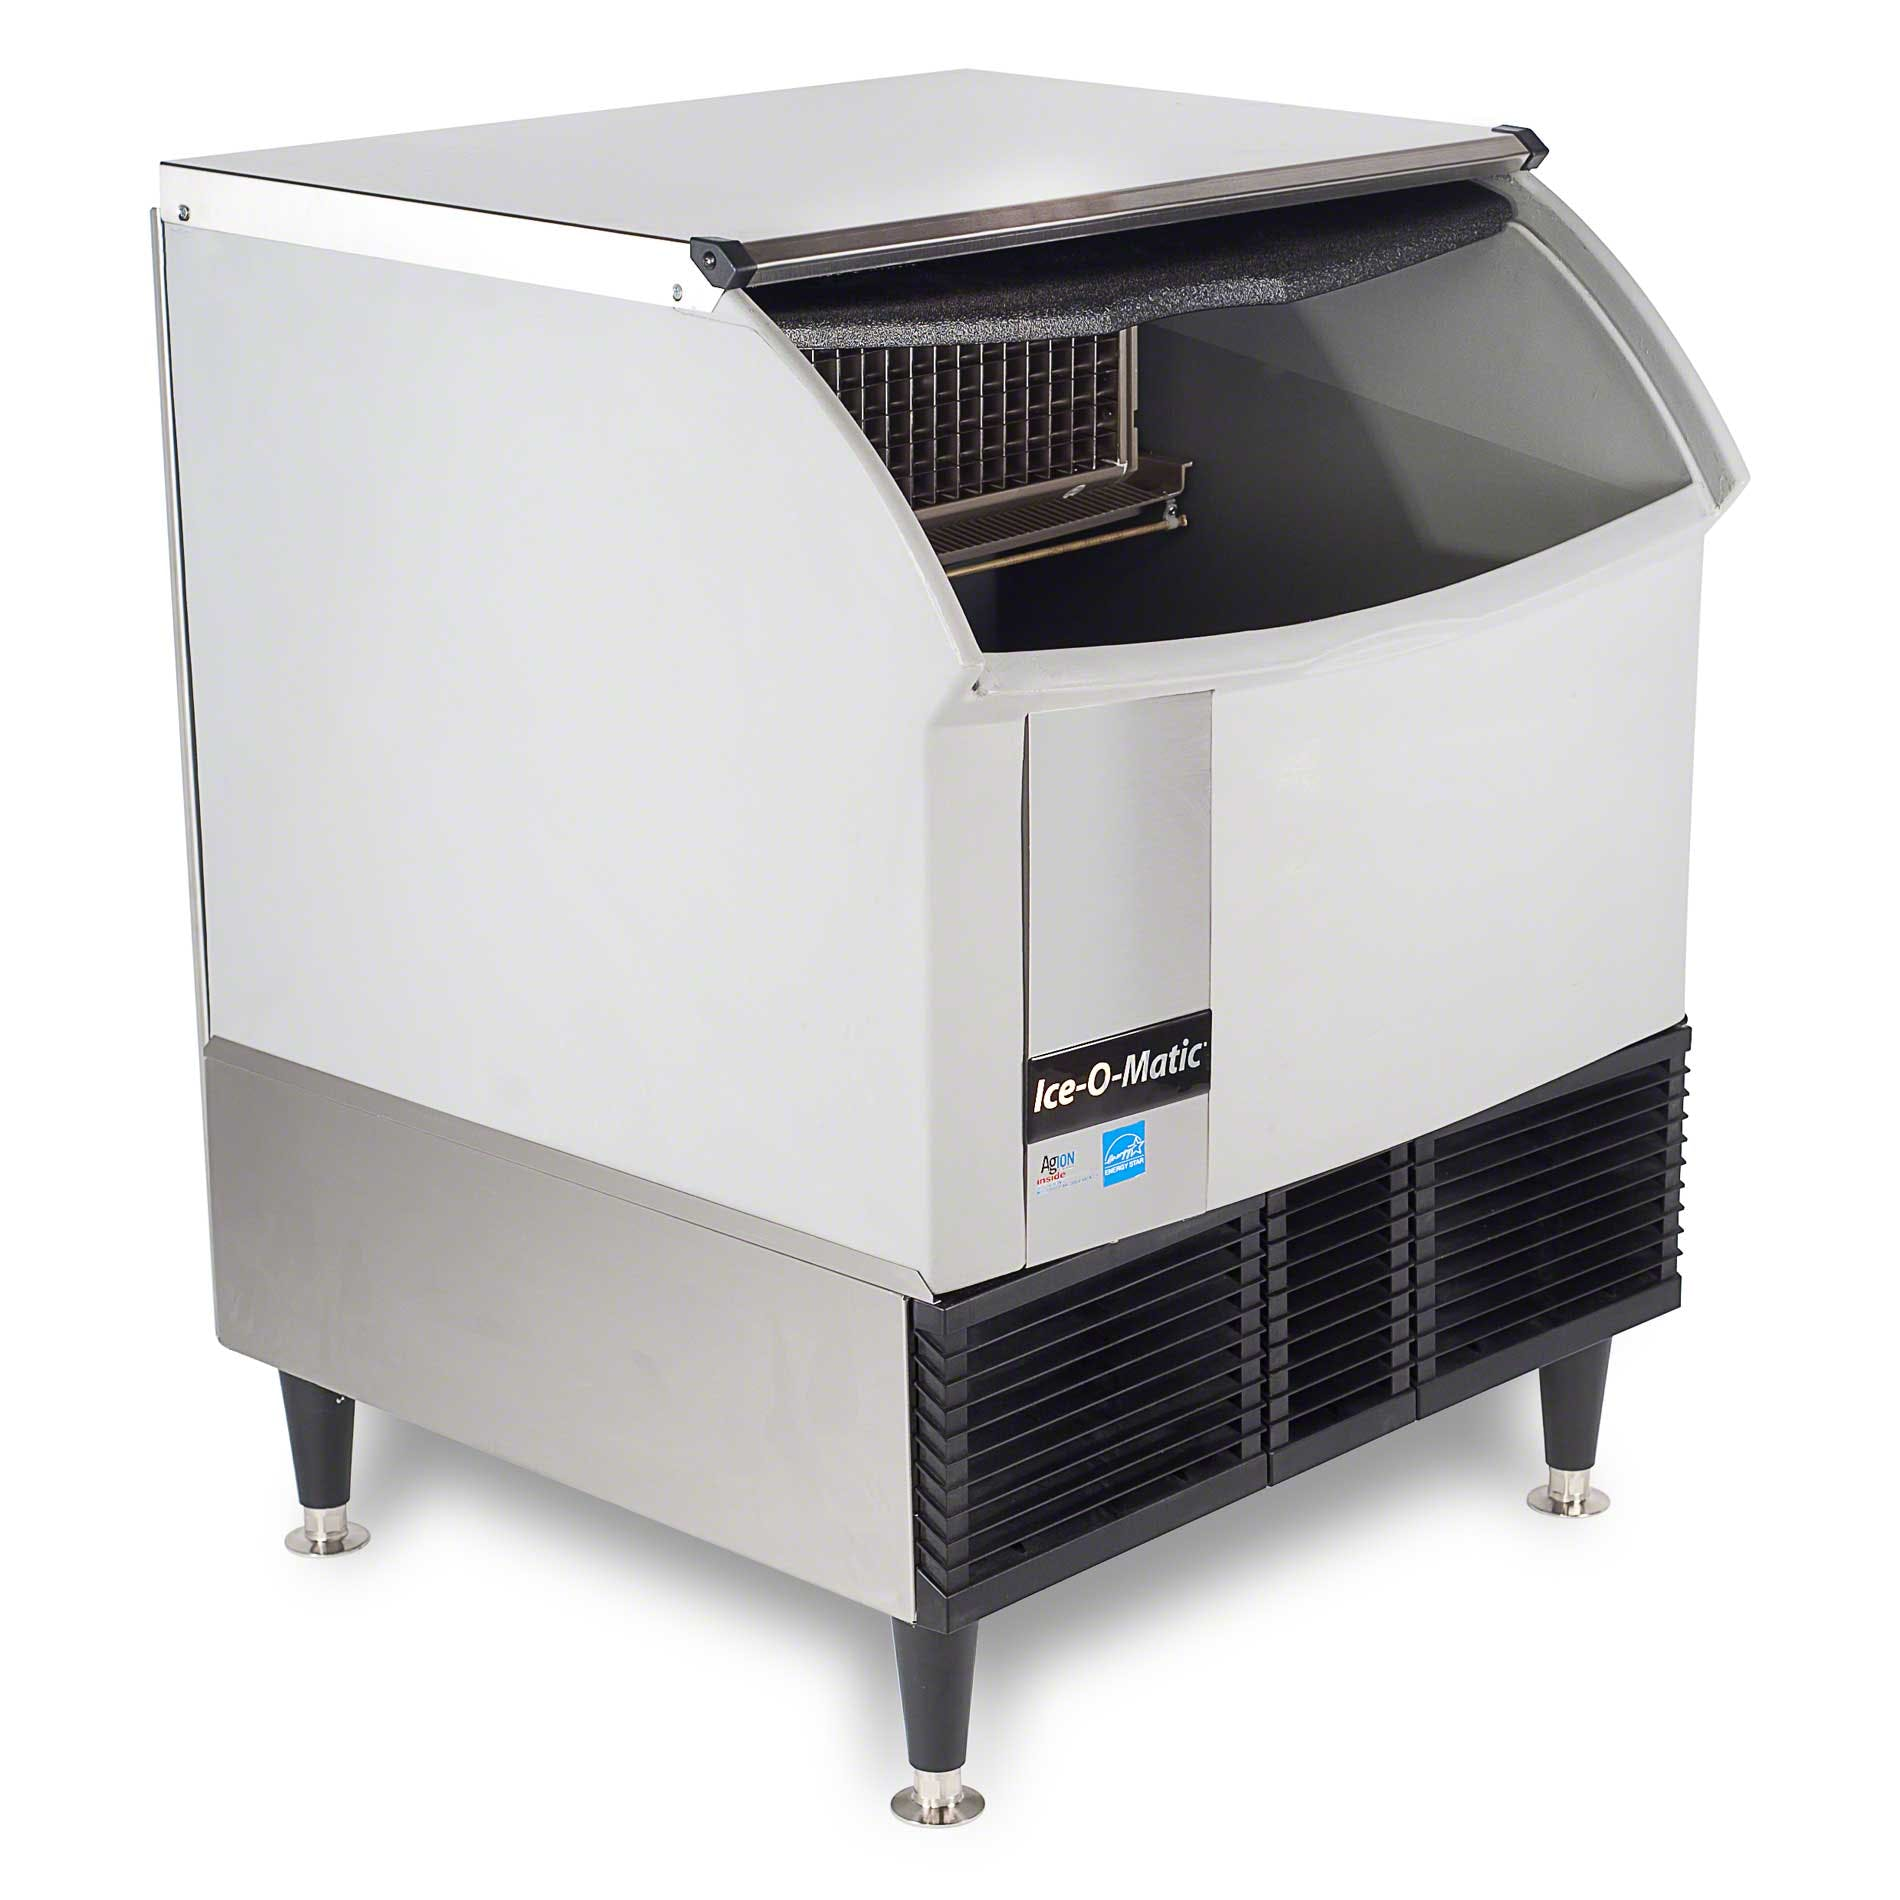 Ice-O-Matic - ICEU300FW 356 lb Self-Contained Full Cube Ice Machine Ice machine sold by Food Service Warehouse